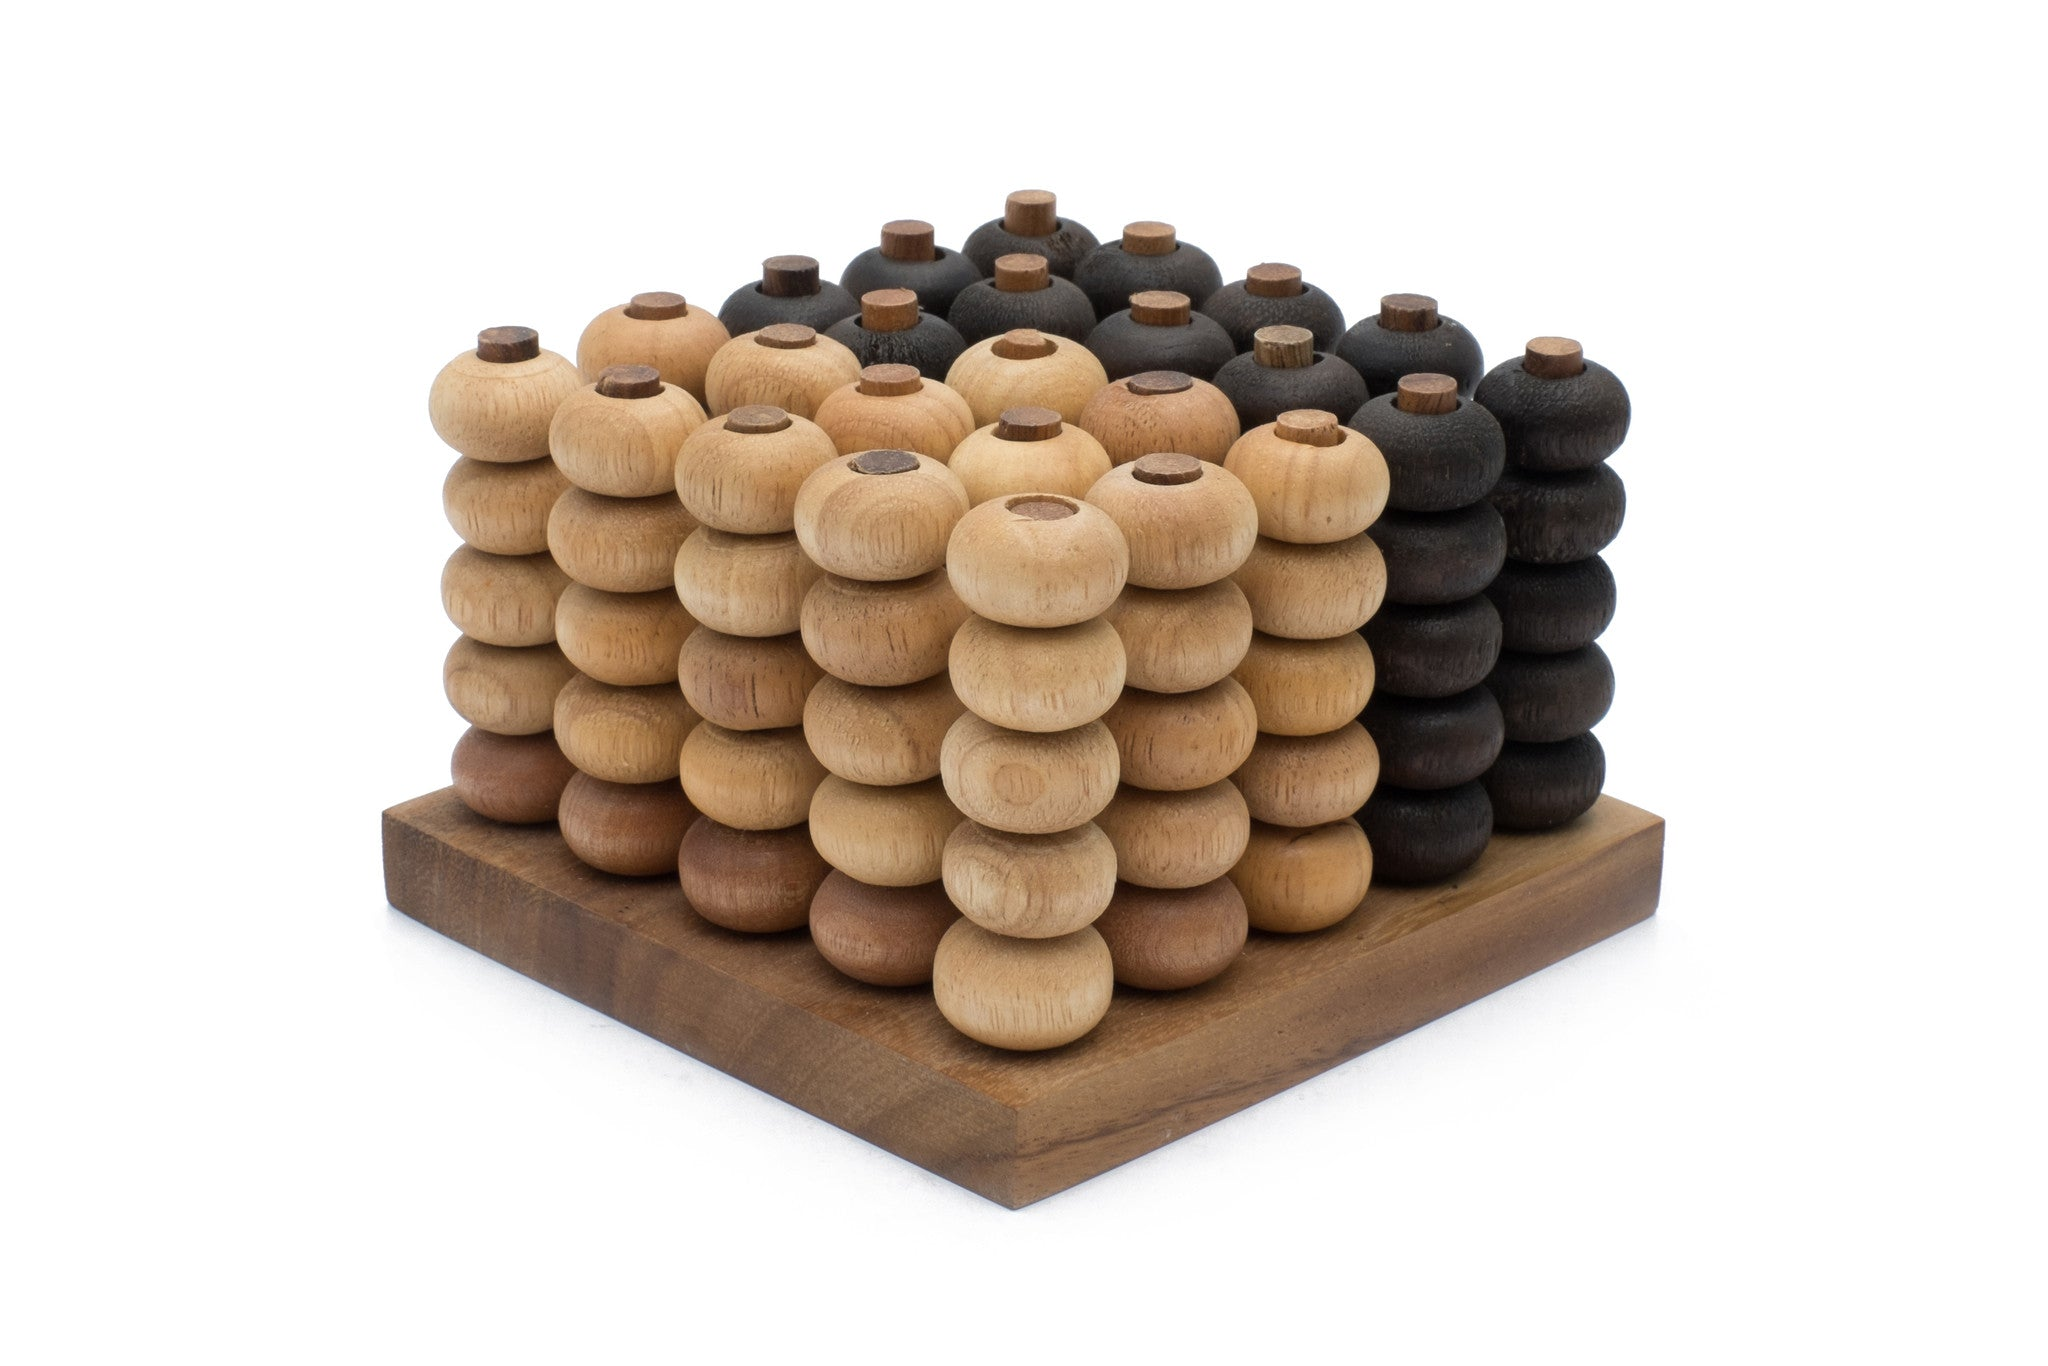 3D Connect Four